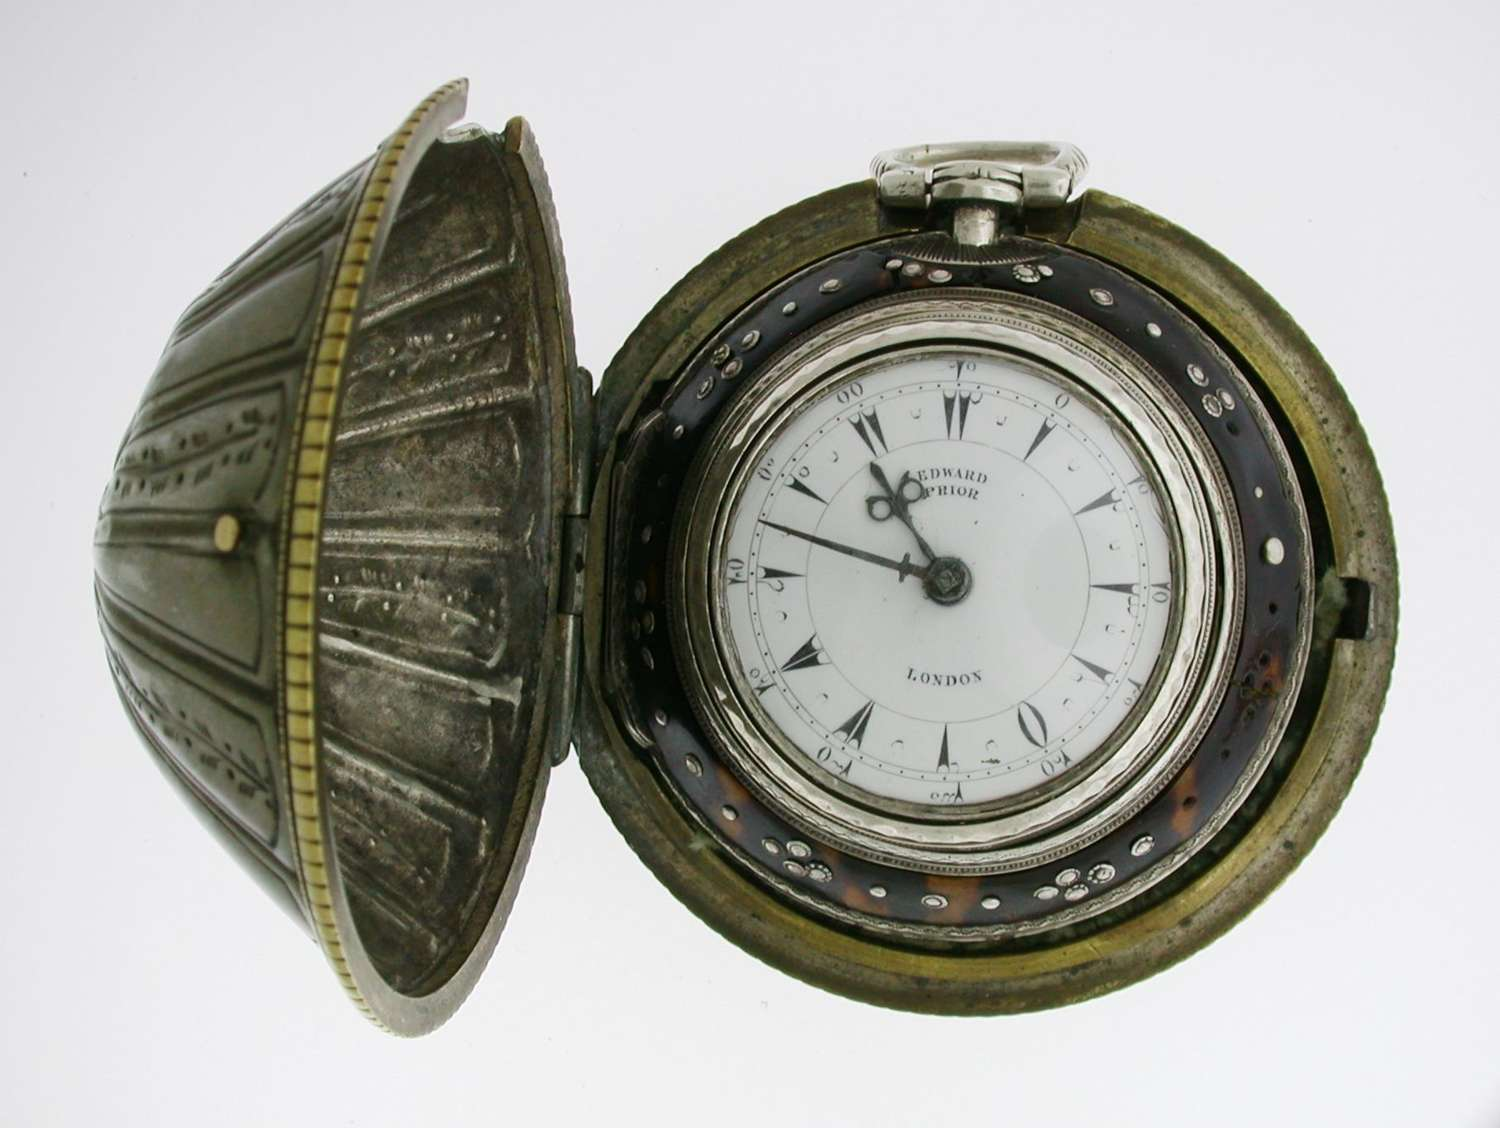 Edward Prior - Silver Verge Pocket Watch in  Triple Protective Case